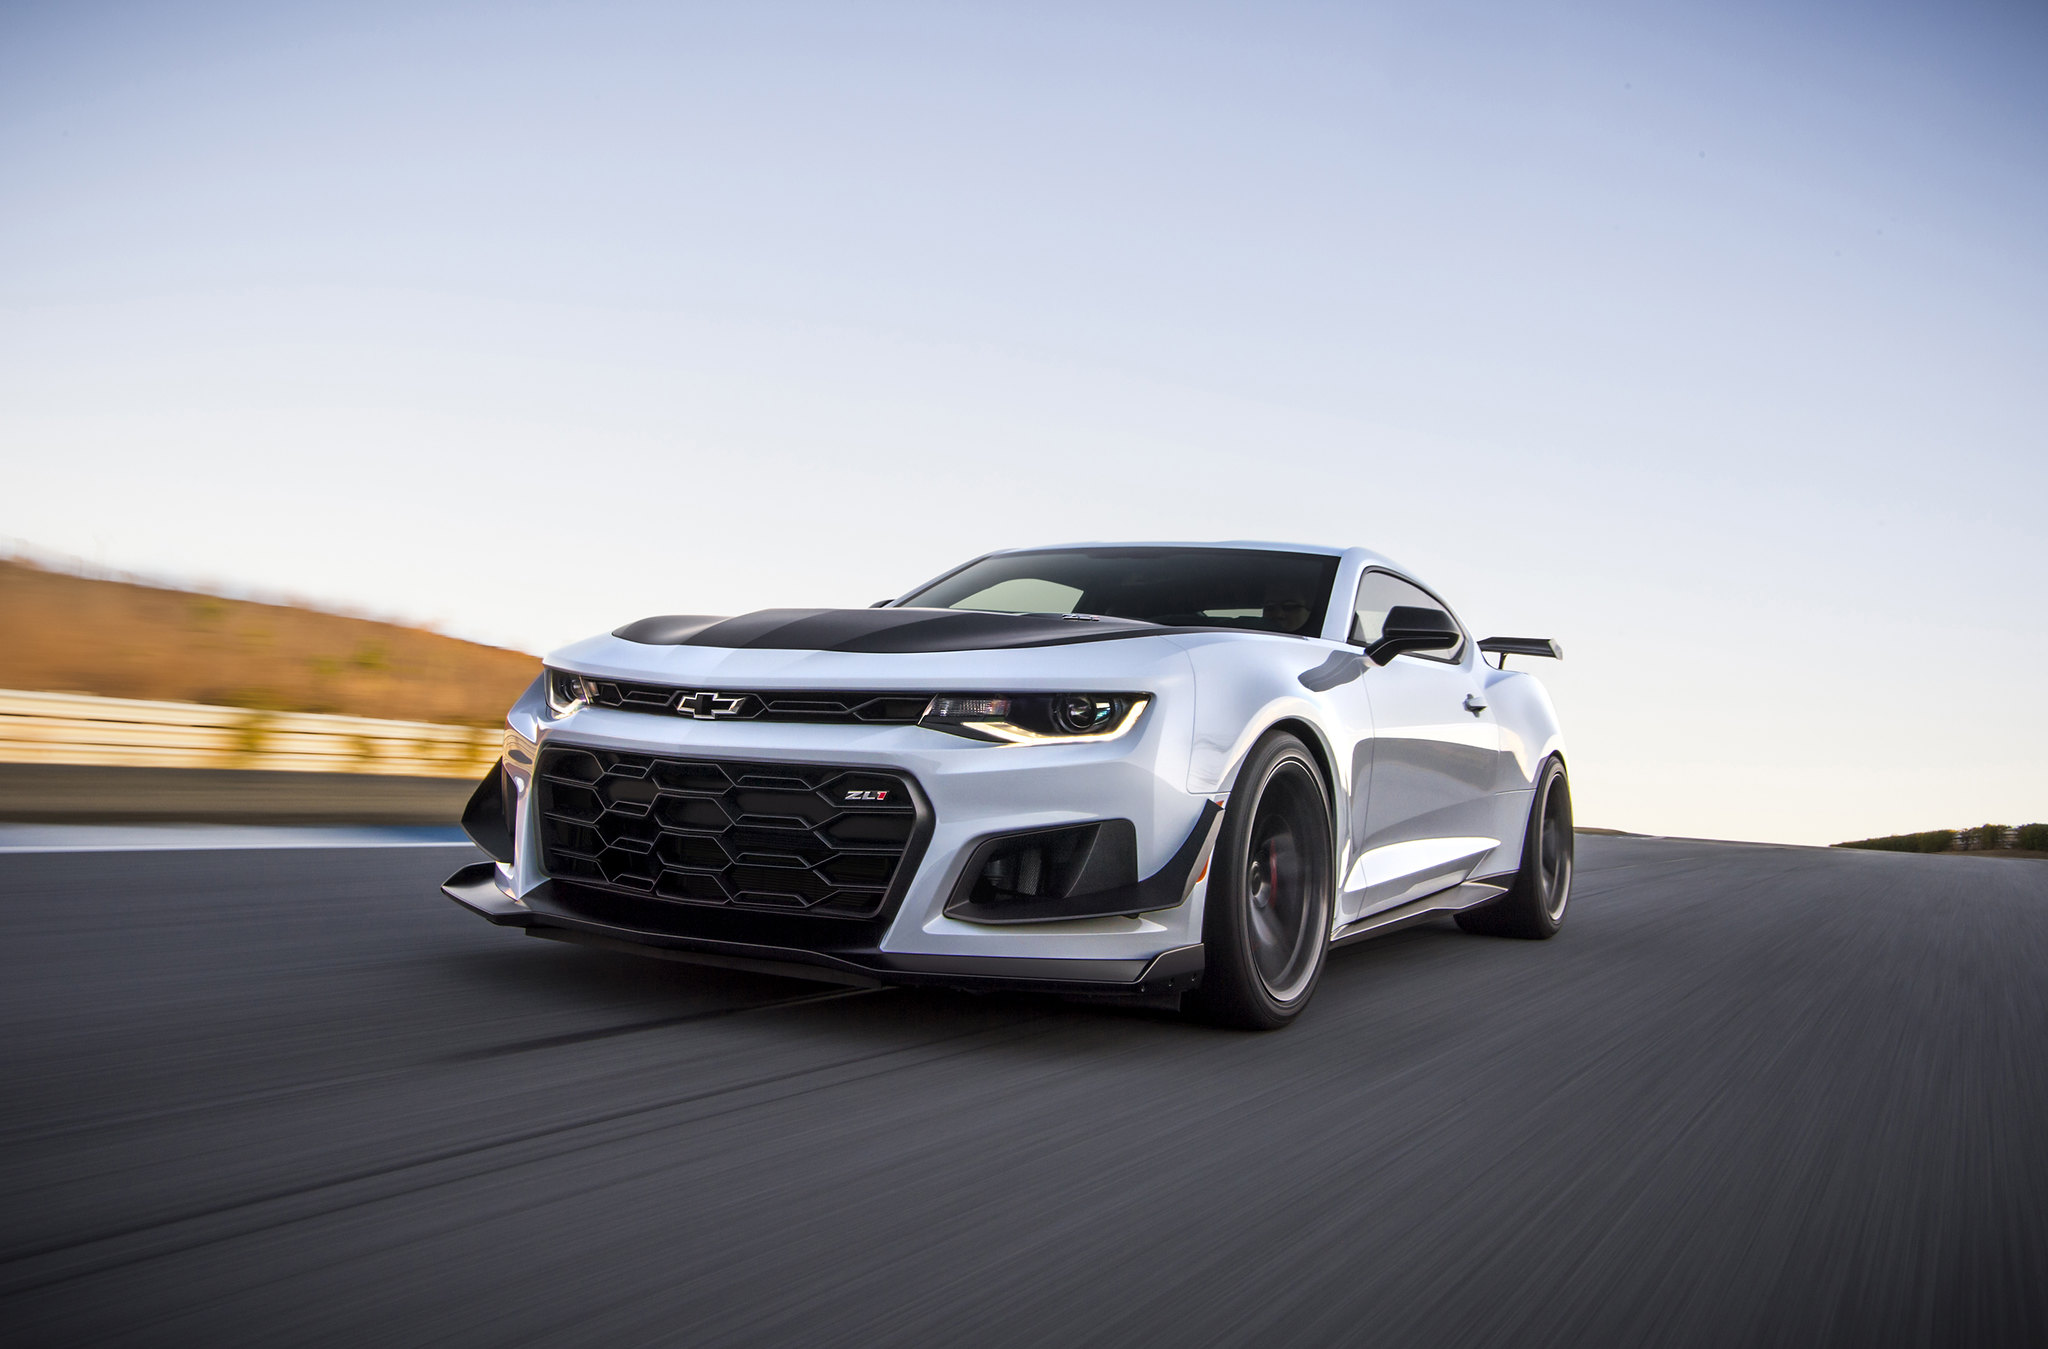 2018 Camaro ZL1 LE priced at $69,995